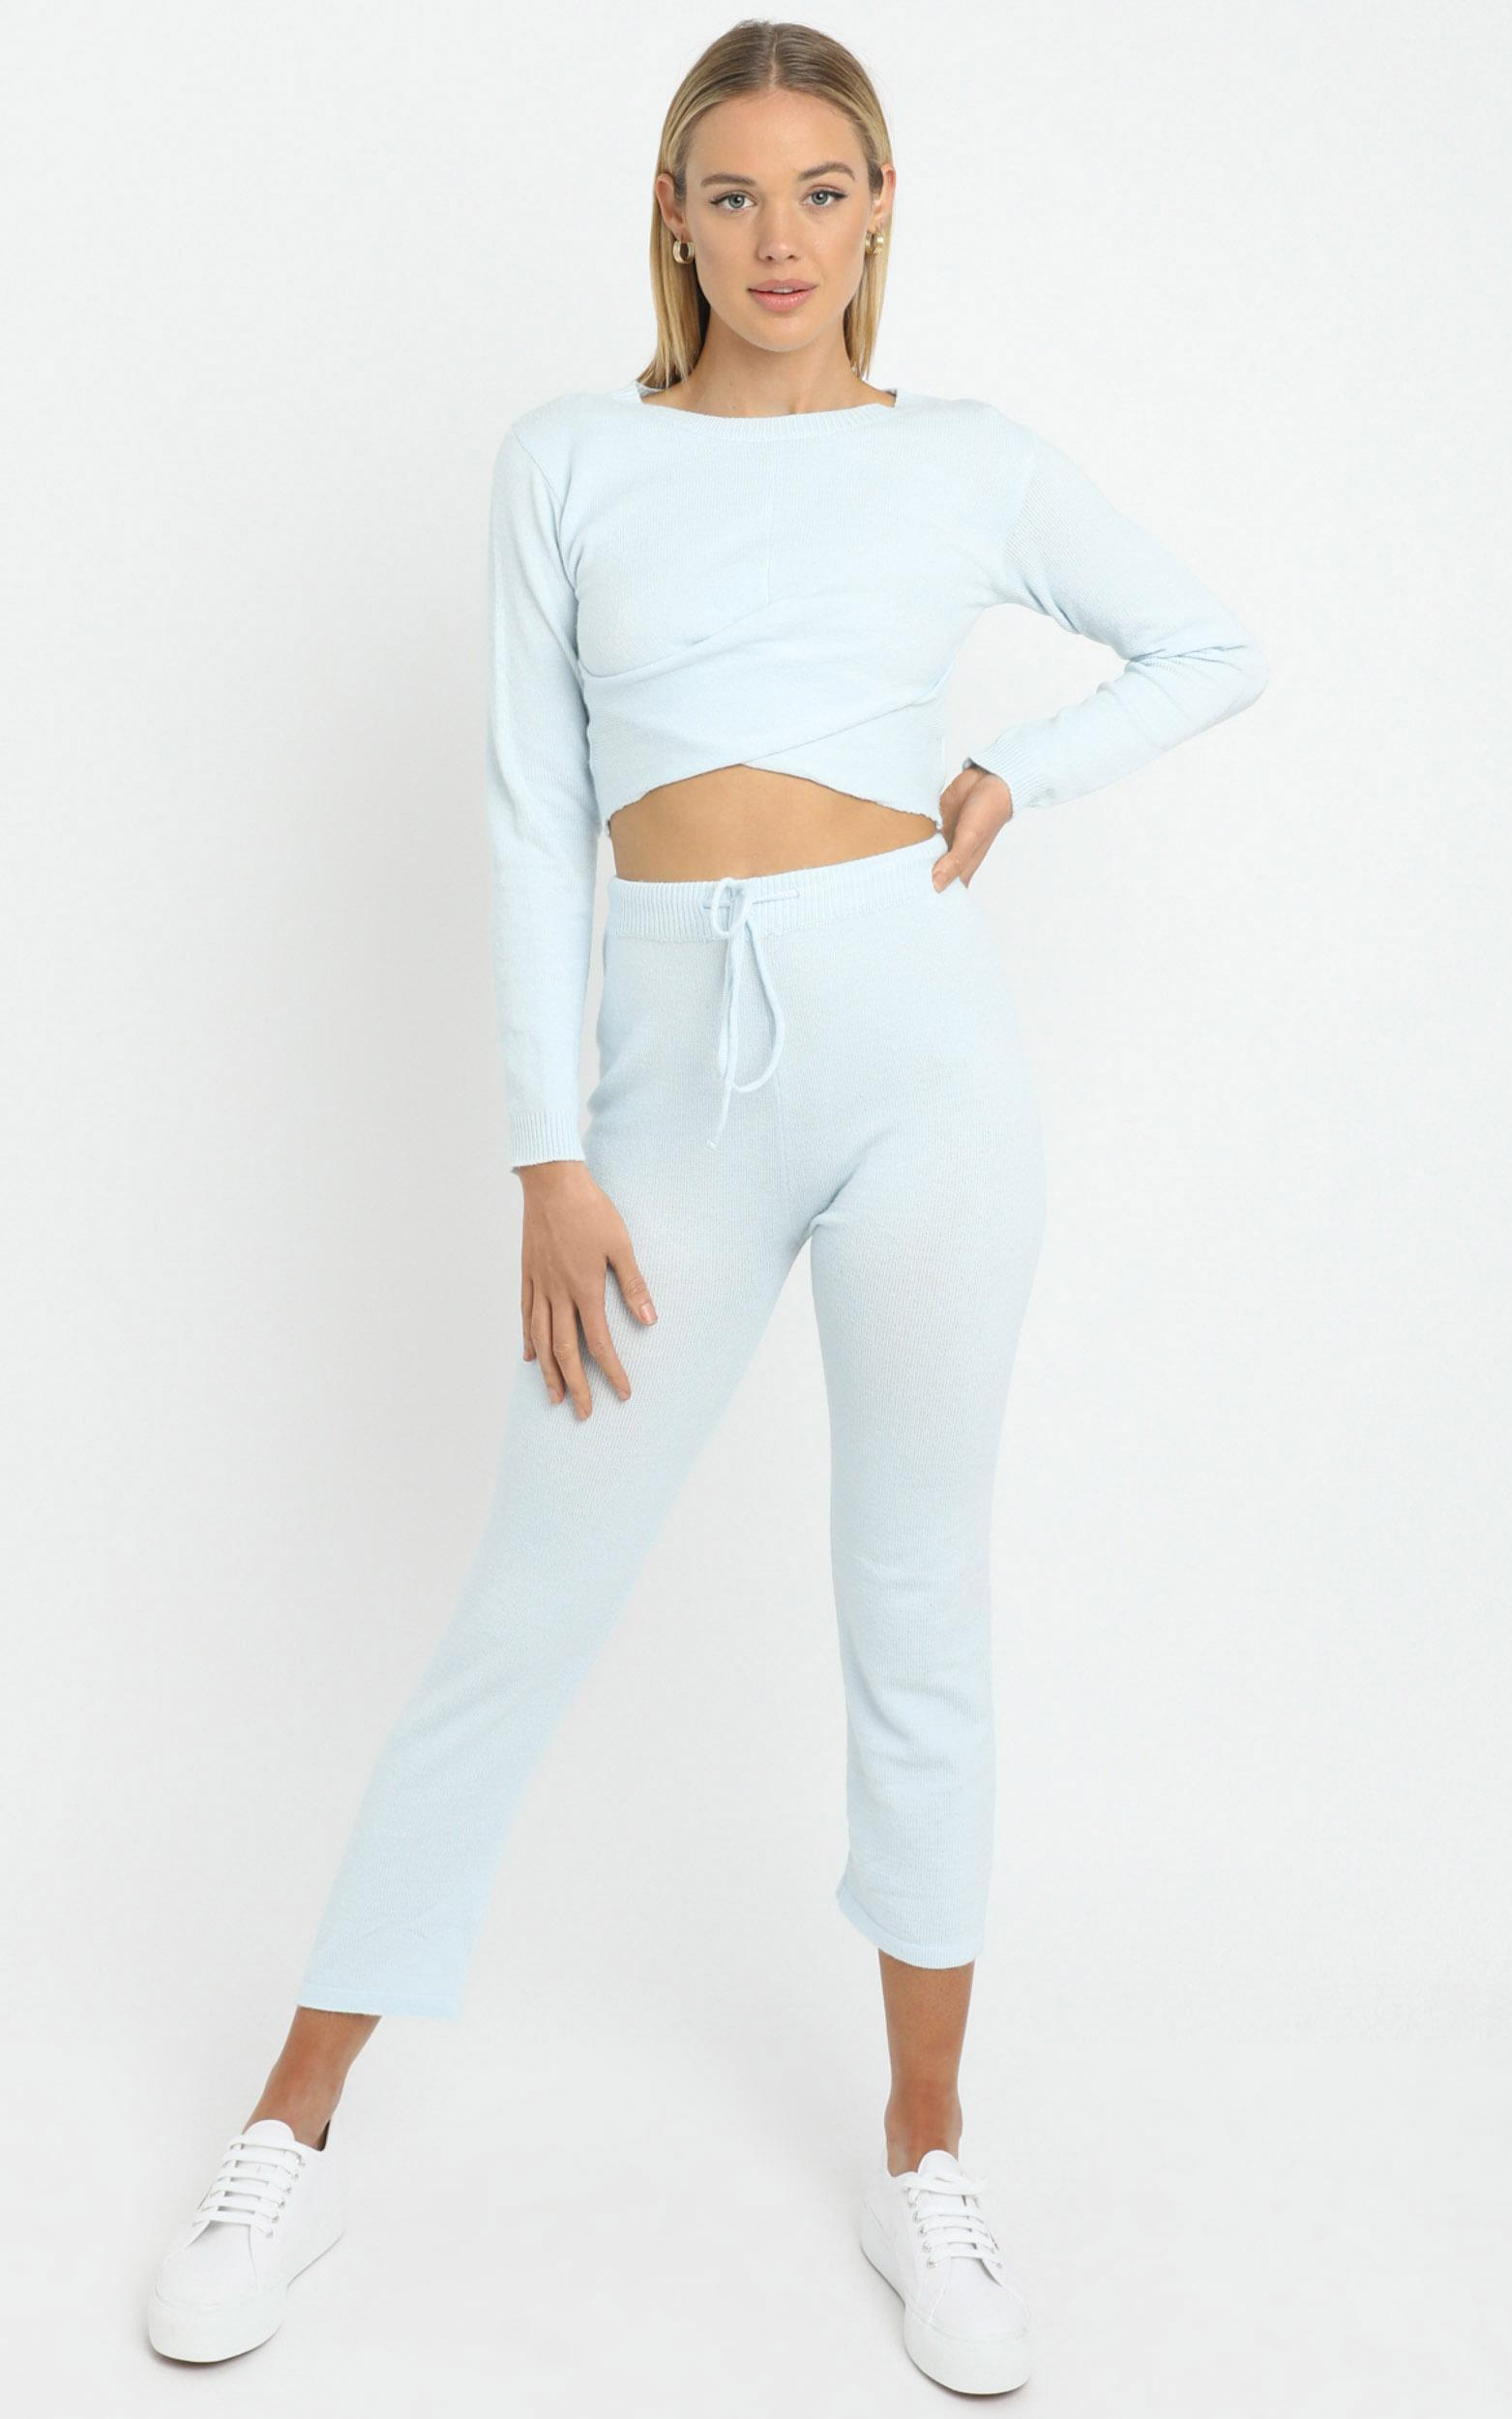 Deanna Knit Pants in Baby Blue - L, Blue, hi-res image number null